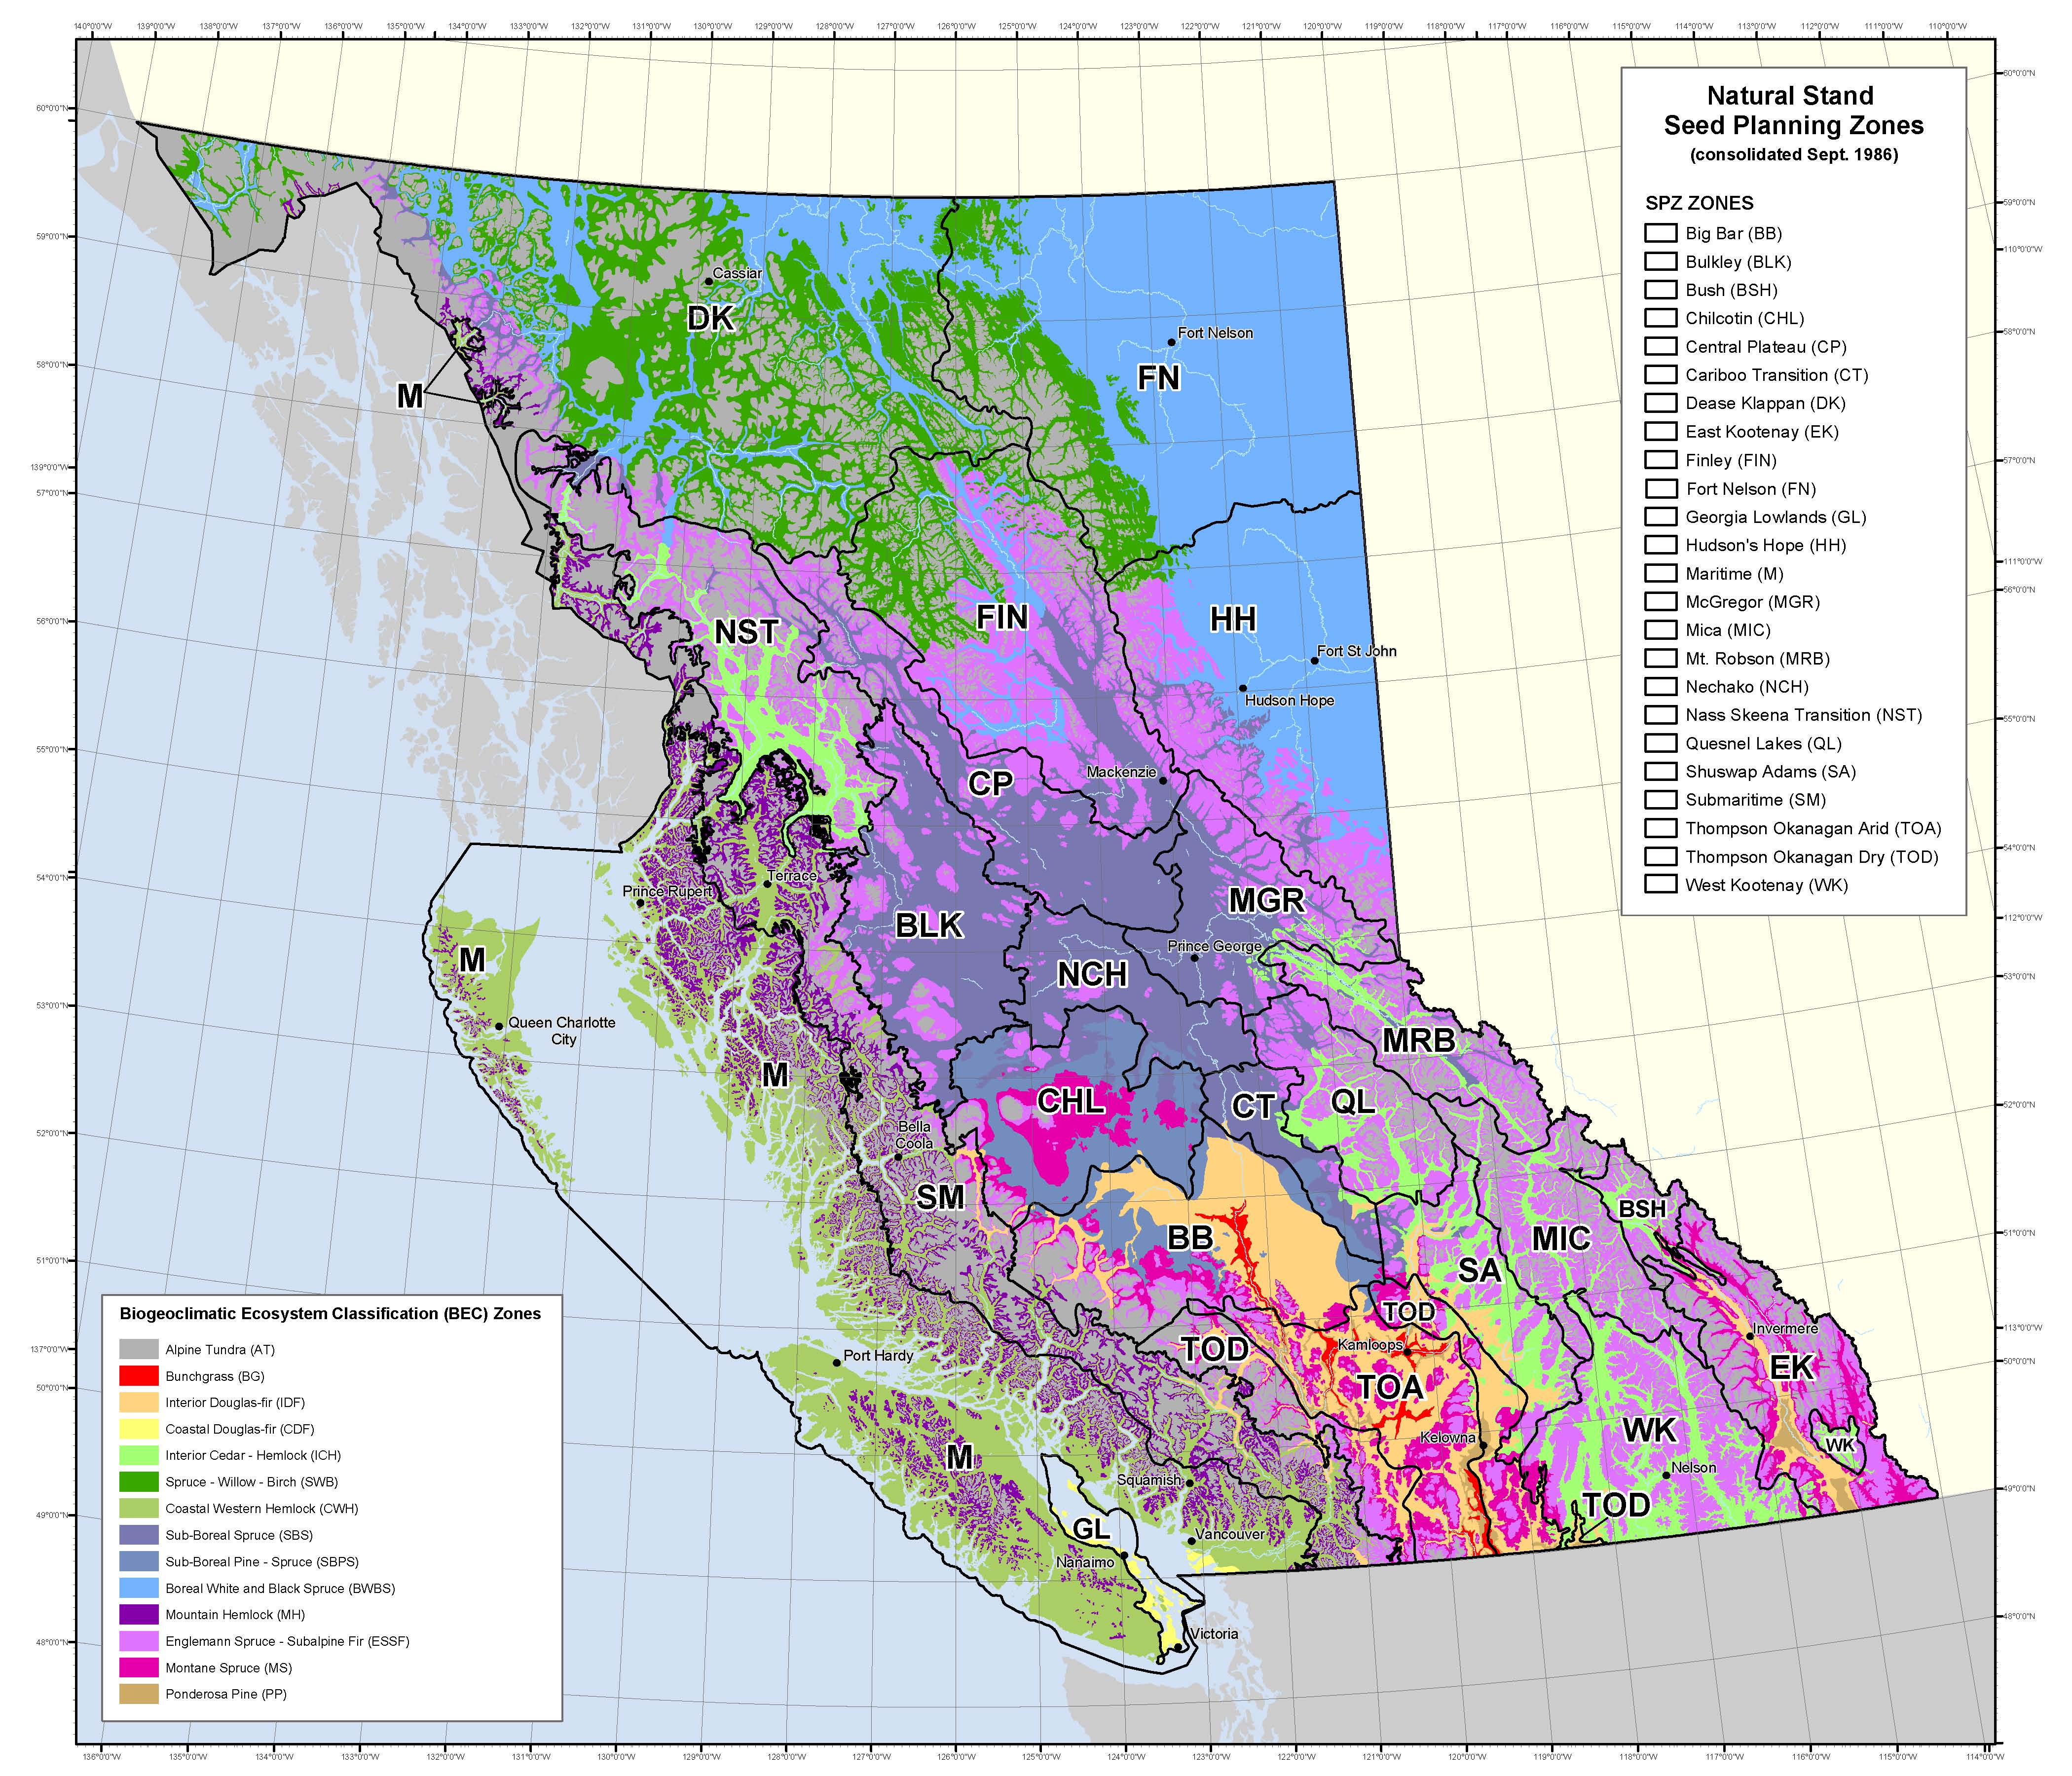 Industry California Map.Seed Planning Zone Maps Spatial Data Province Of British Columbia